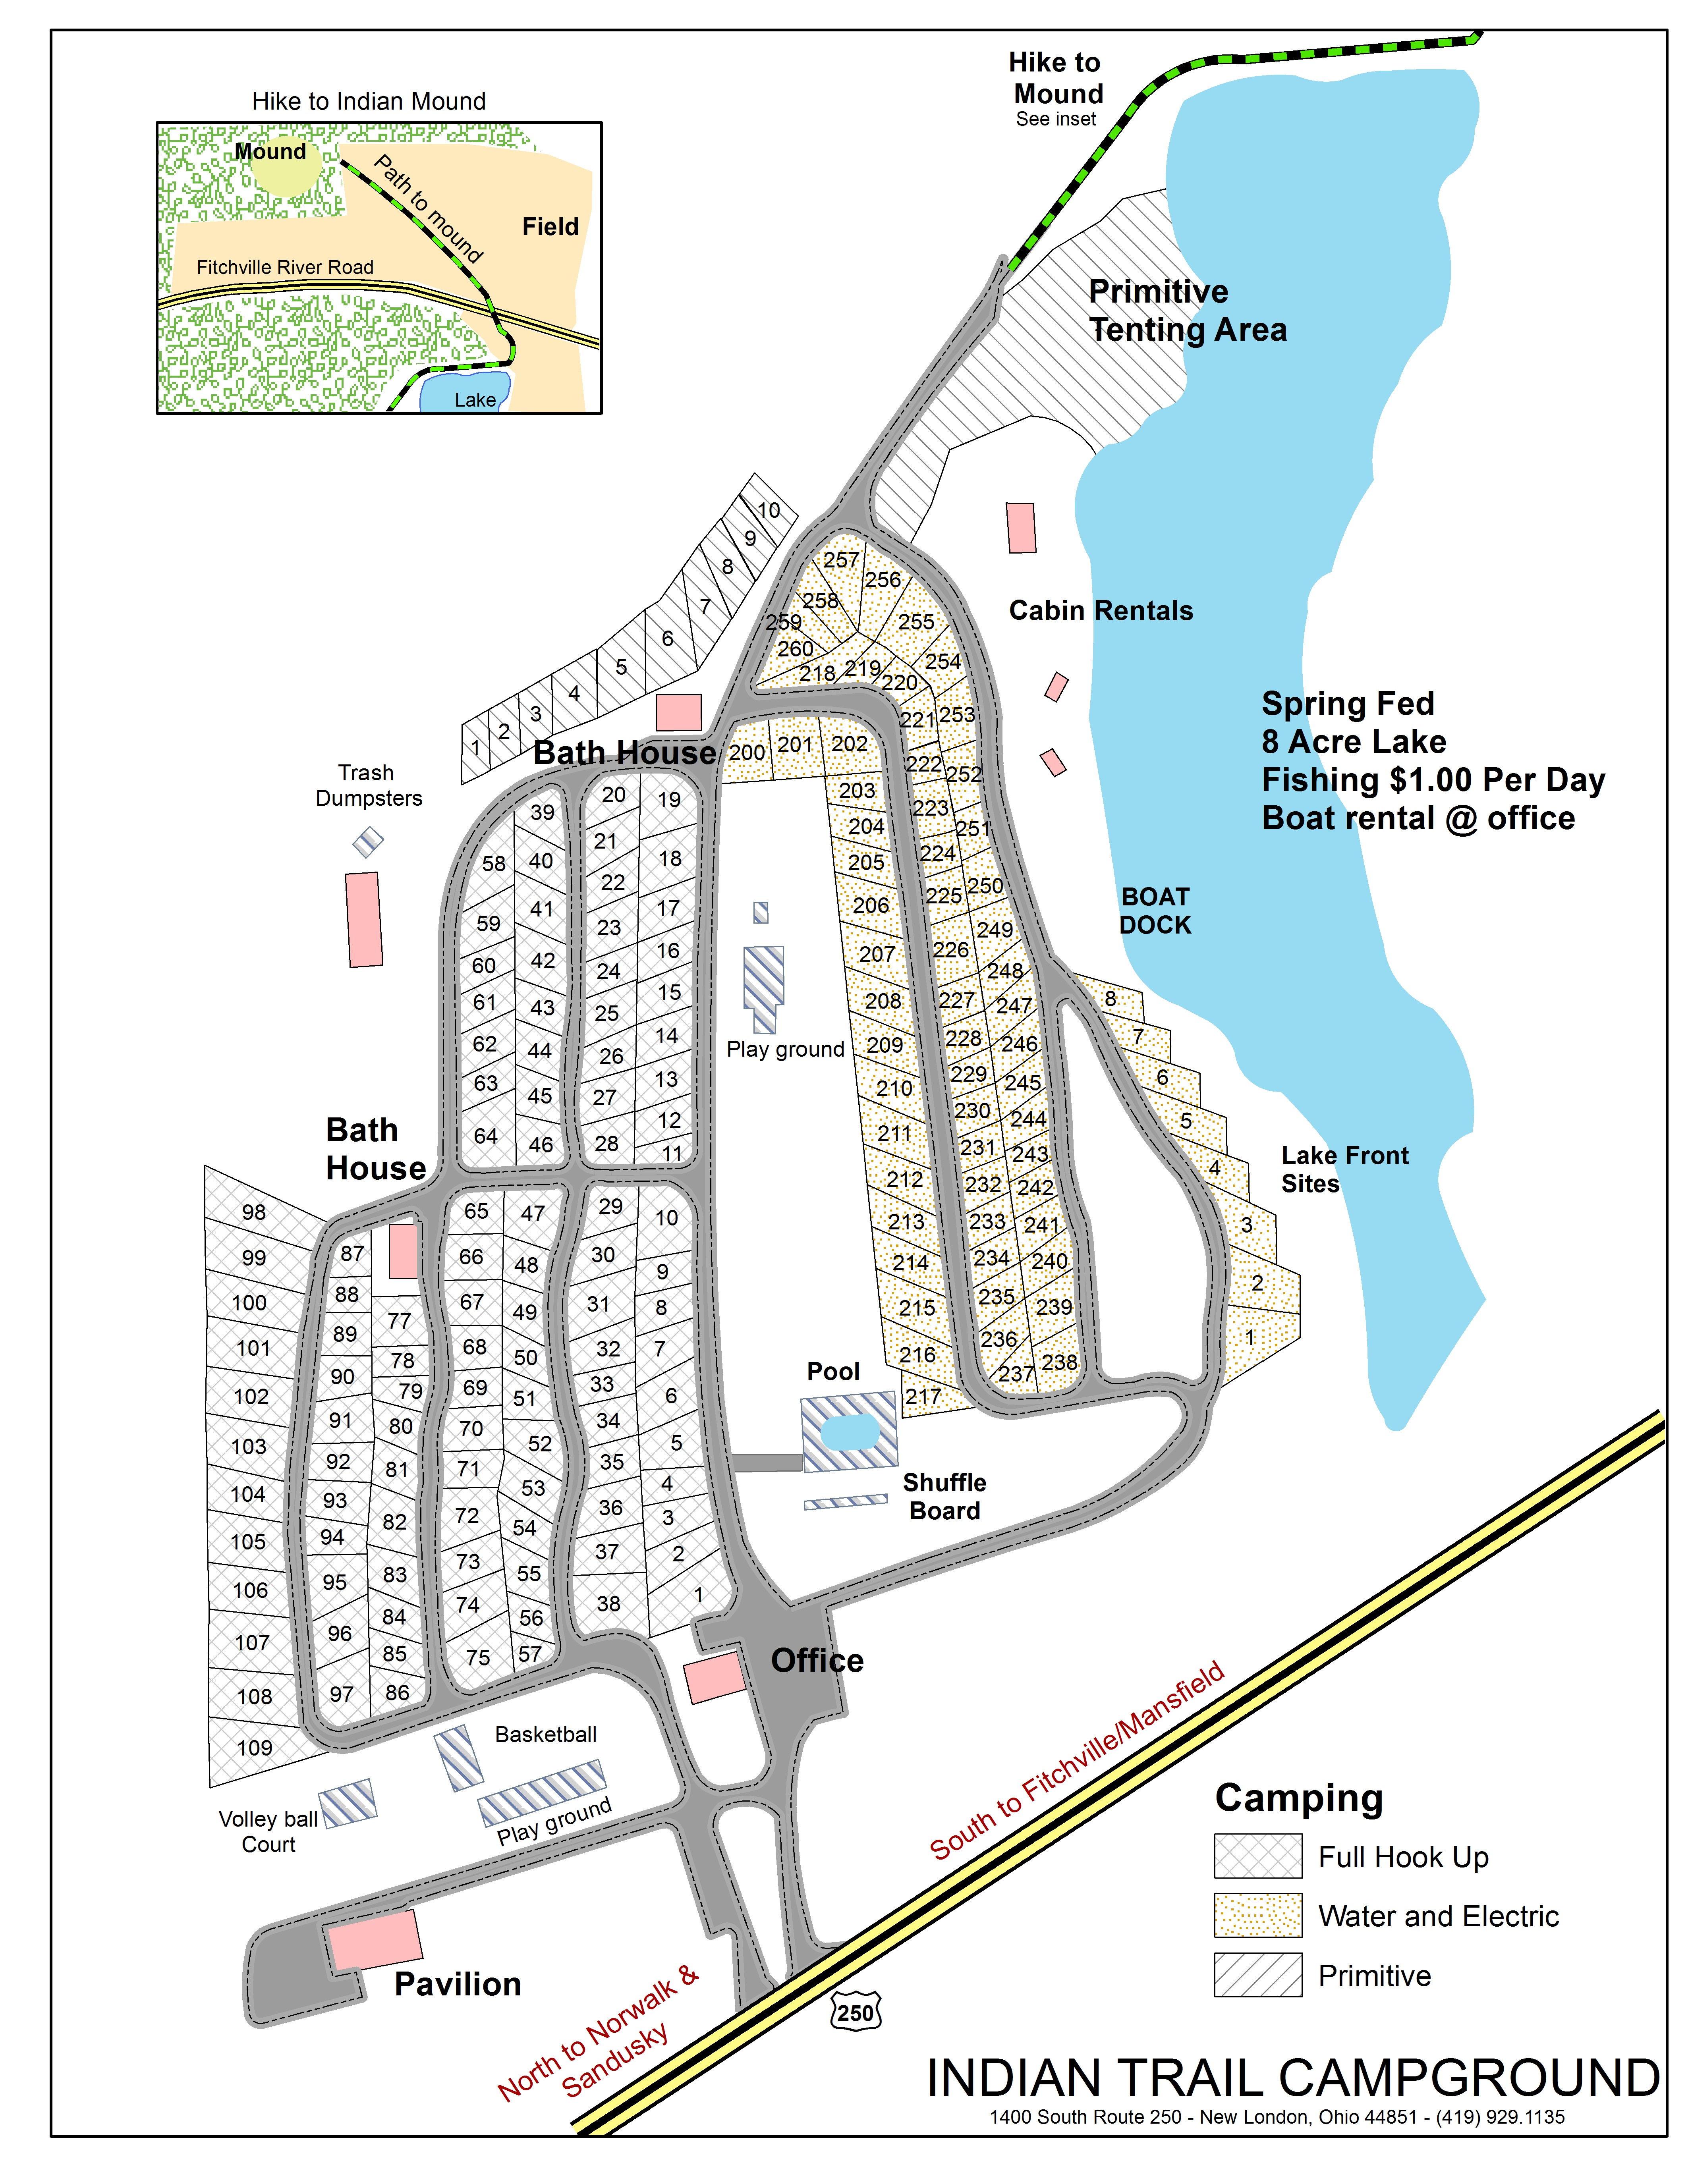 New London Ohio Map.Indian Trail Campground Home